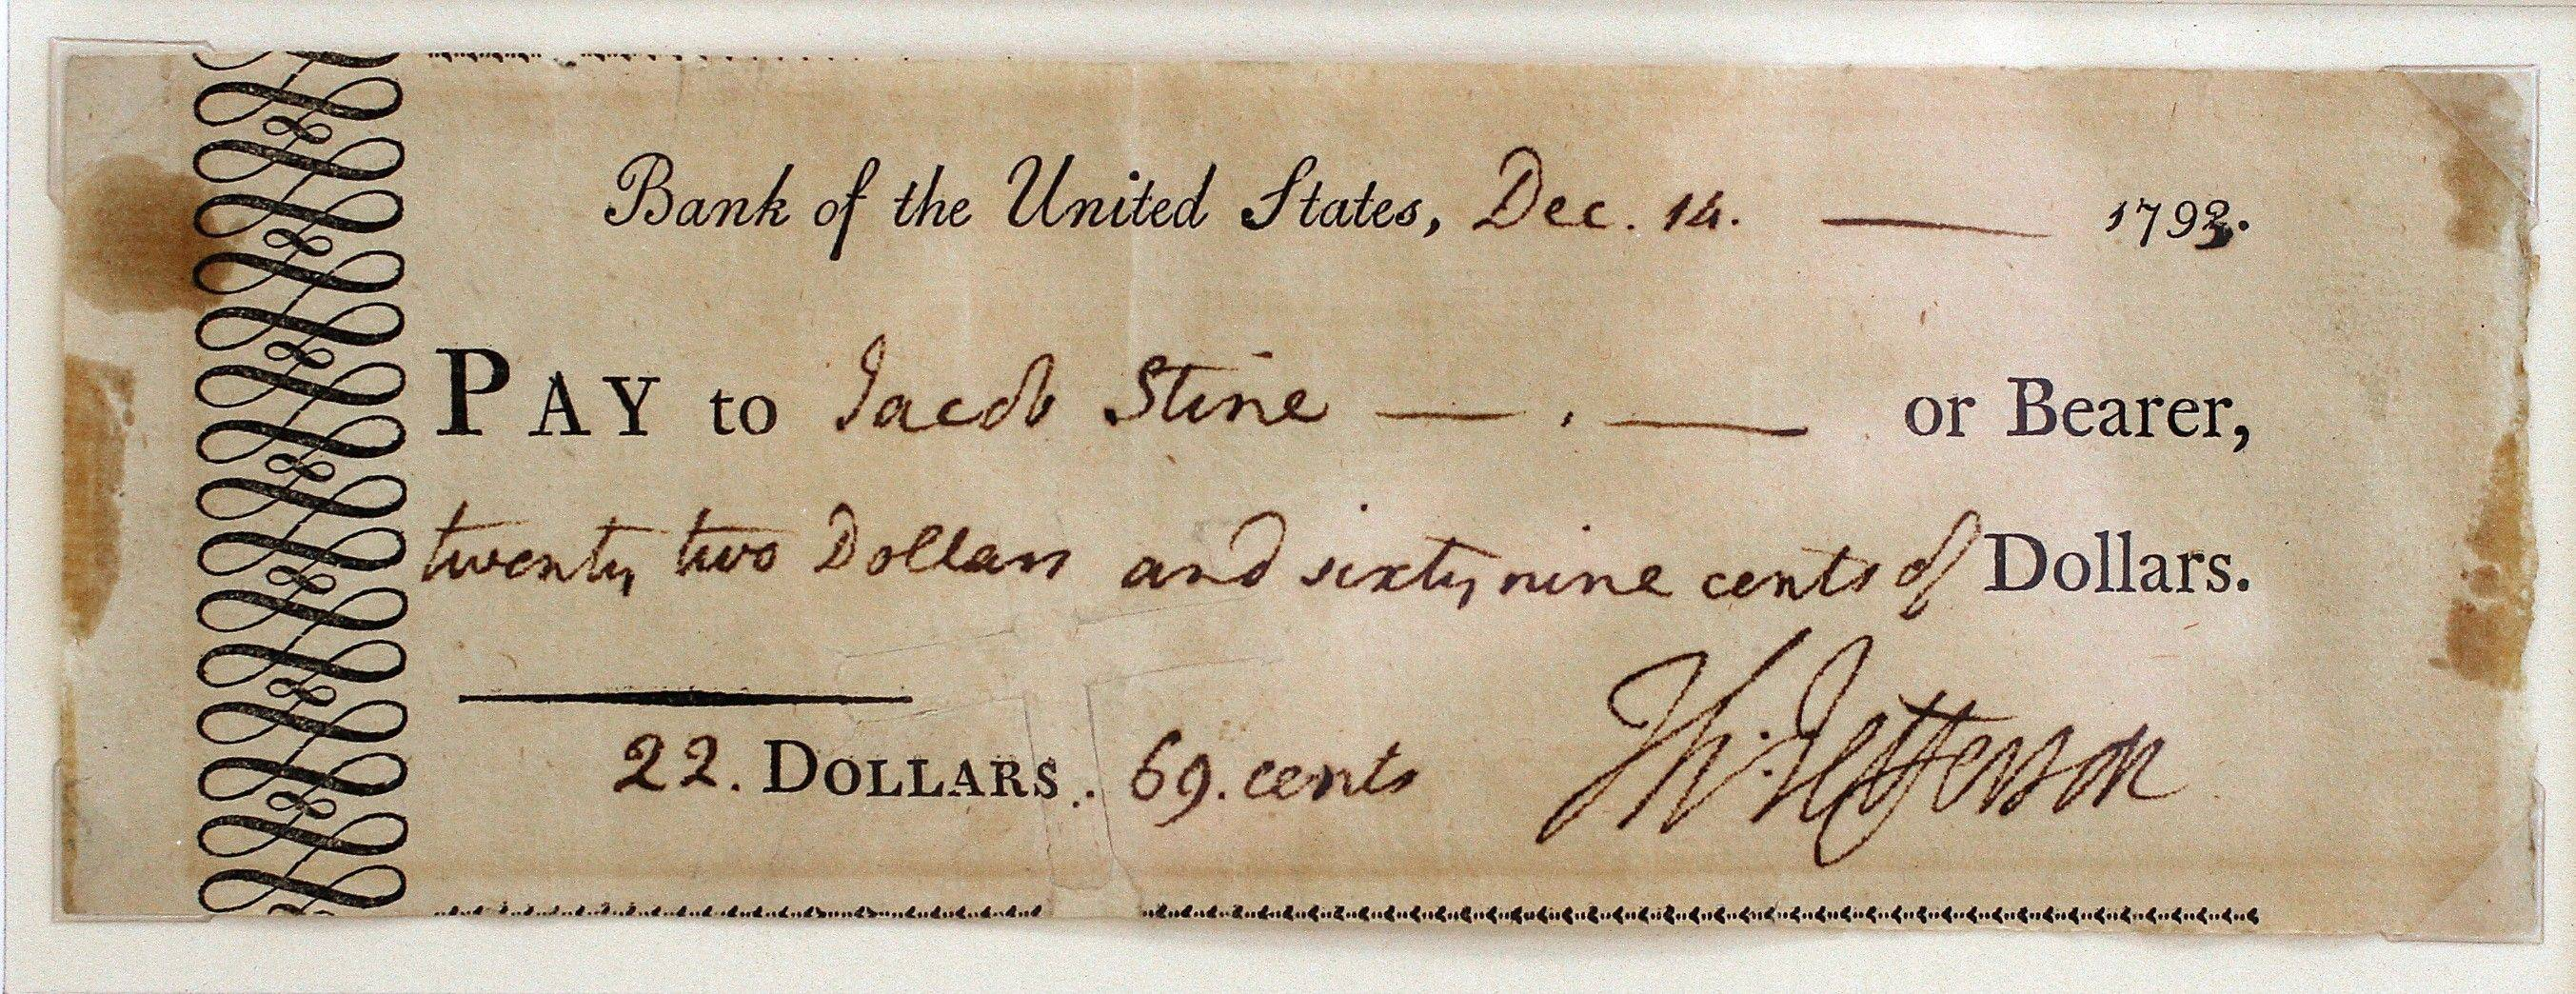 Acheck signed by President Thomas Jefferson, s displayed at the Huntington Bank in Brooklyn,